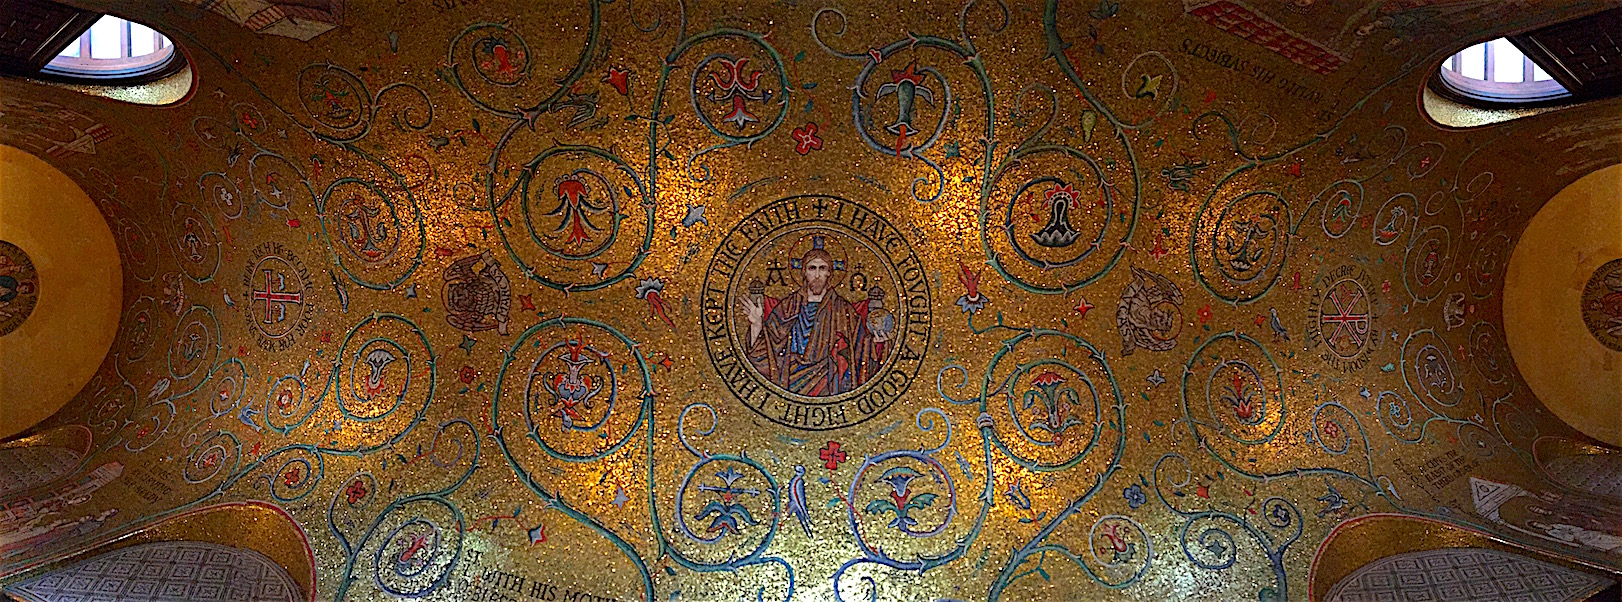 Ceiling in the Cathedral Basilica of St. Louis